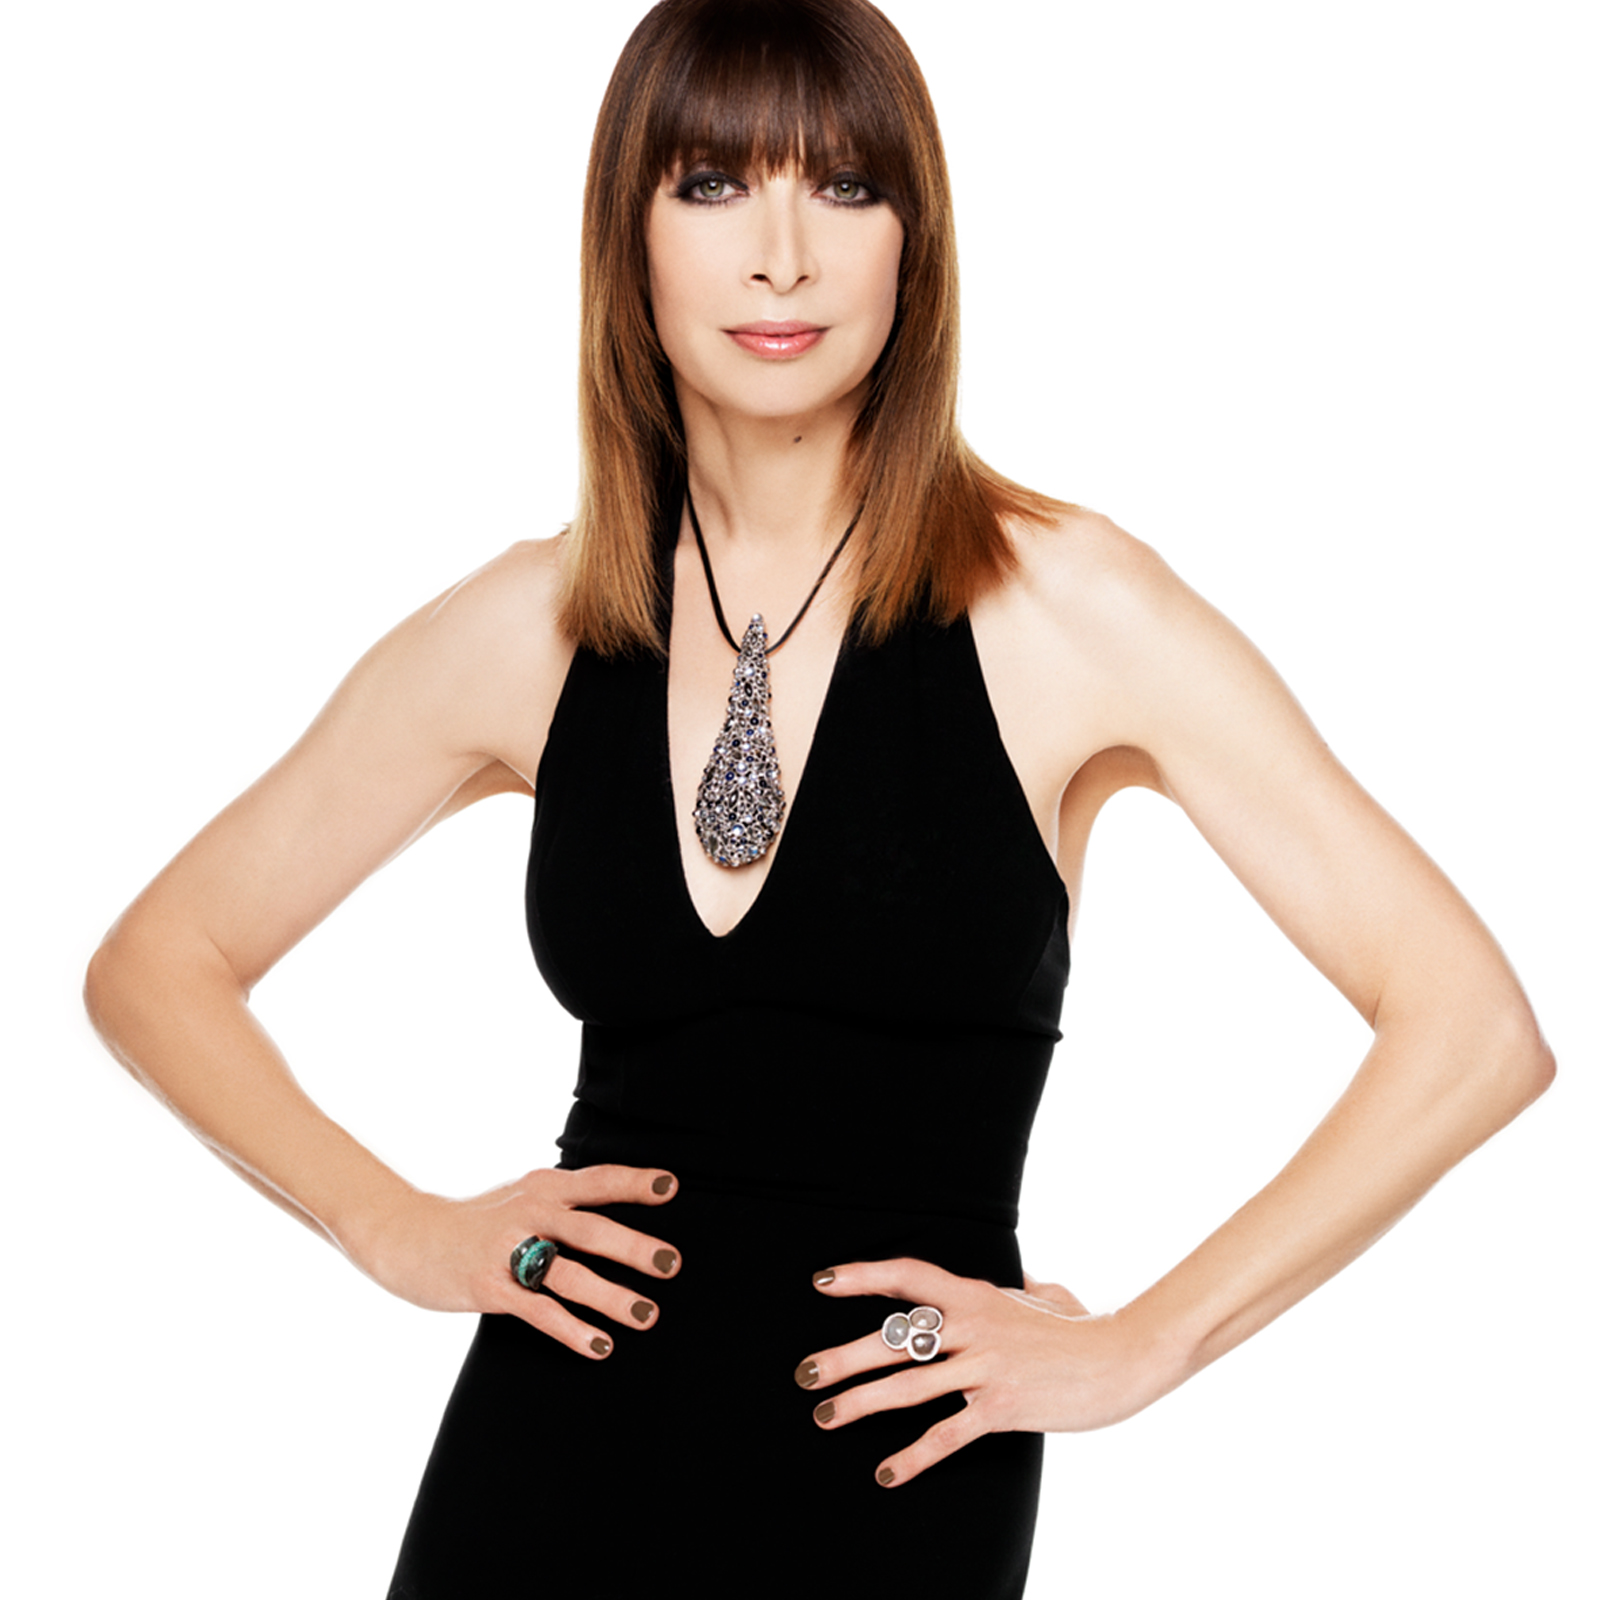 The Current - Illeana Douglas's Top 10